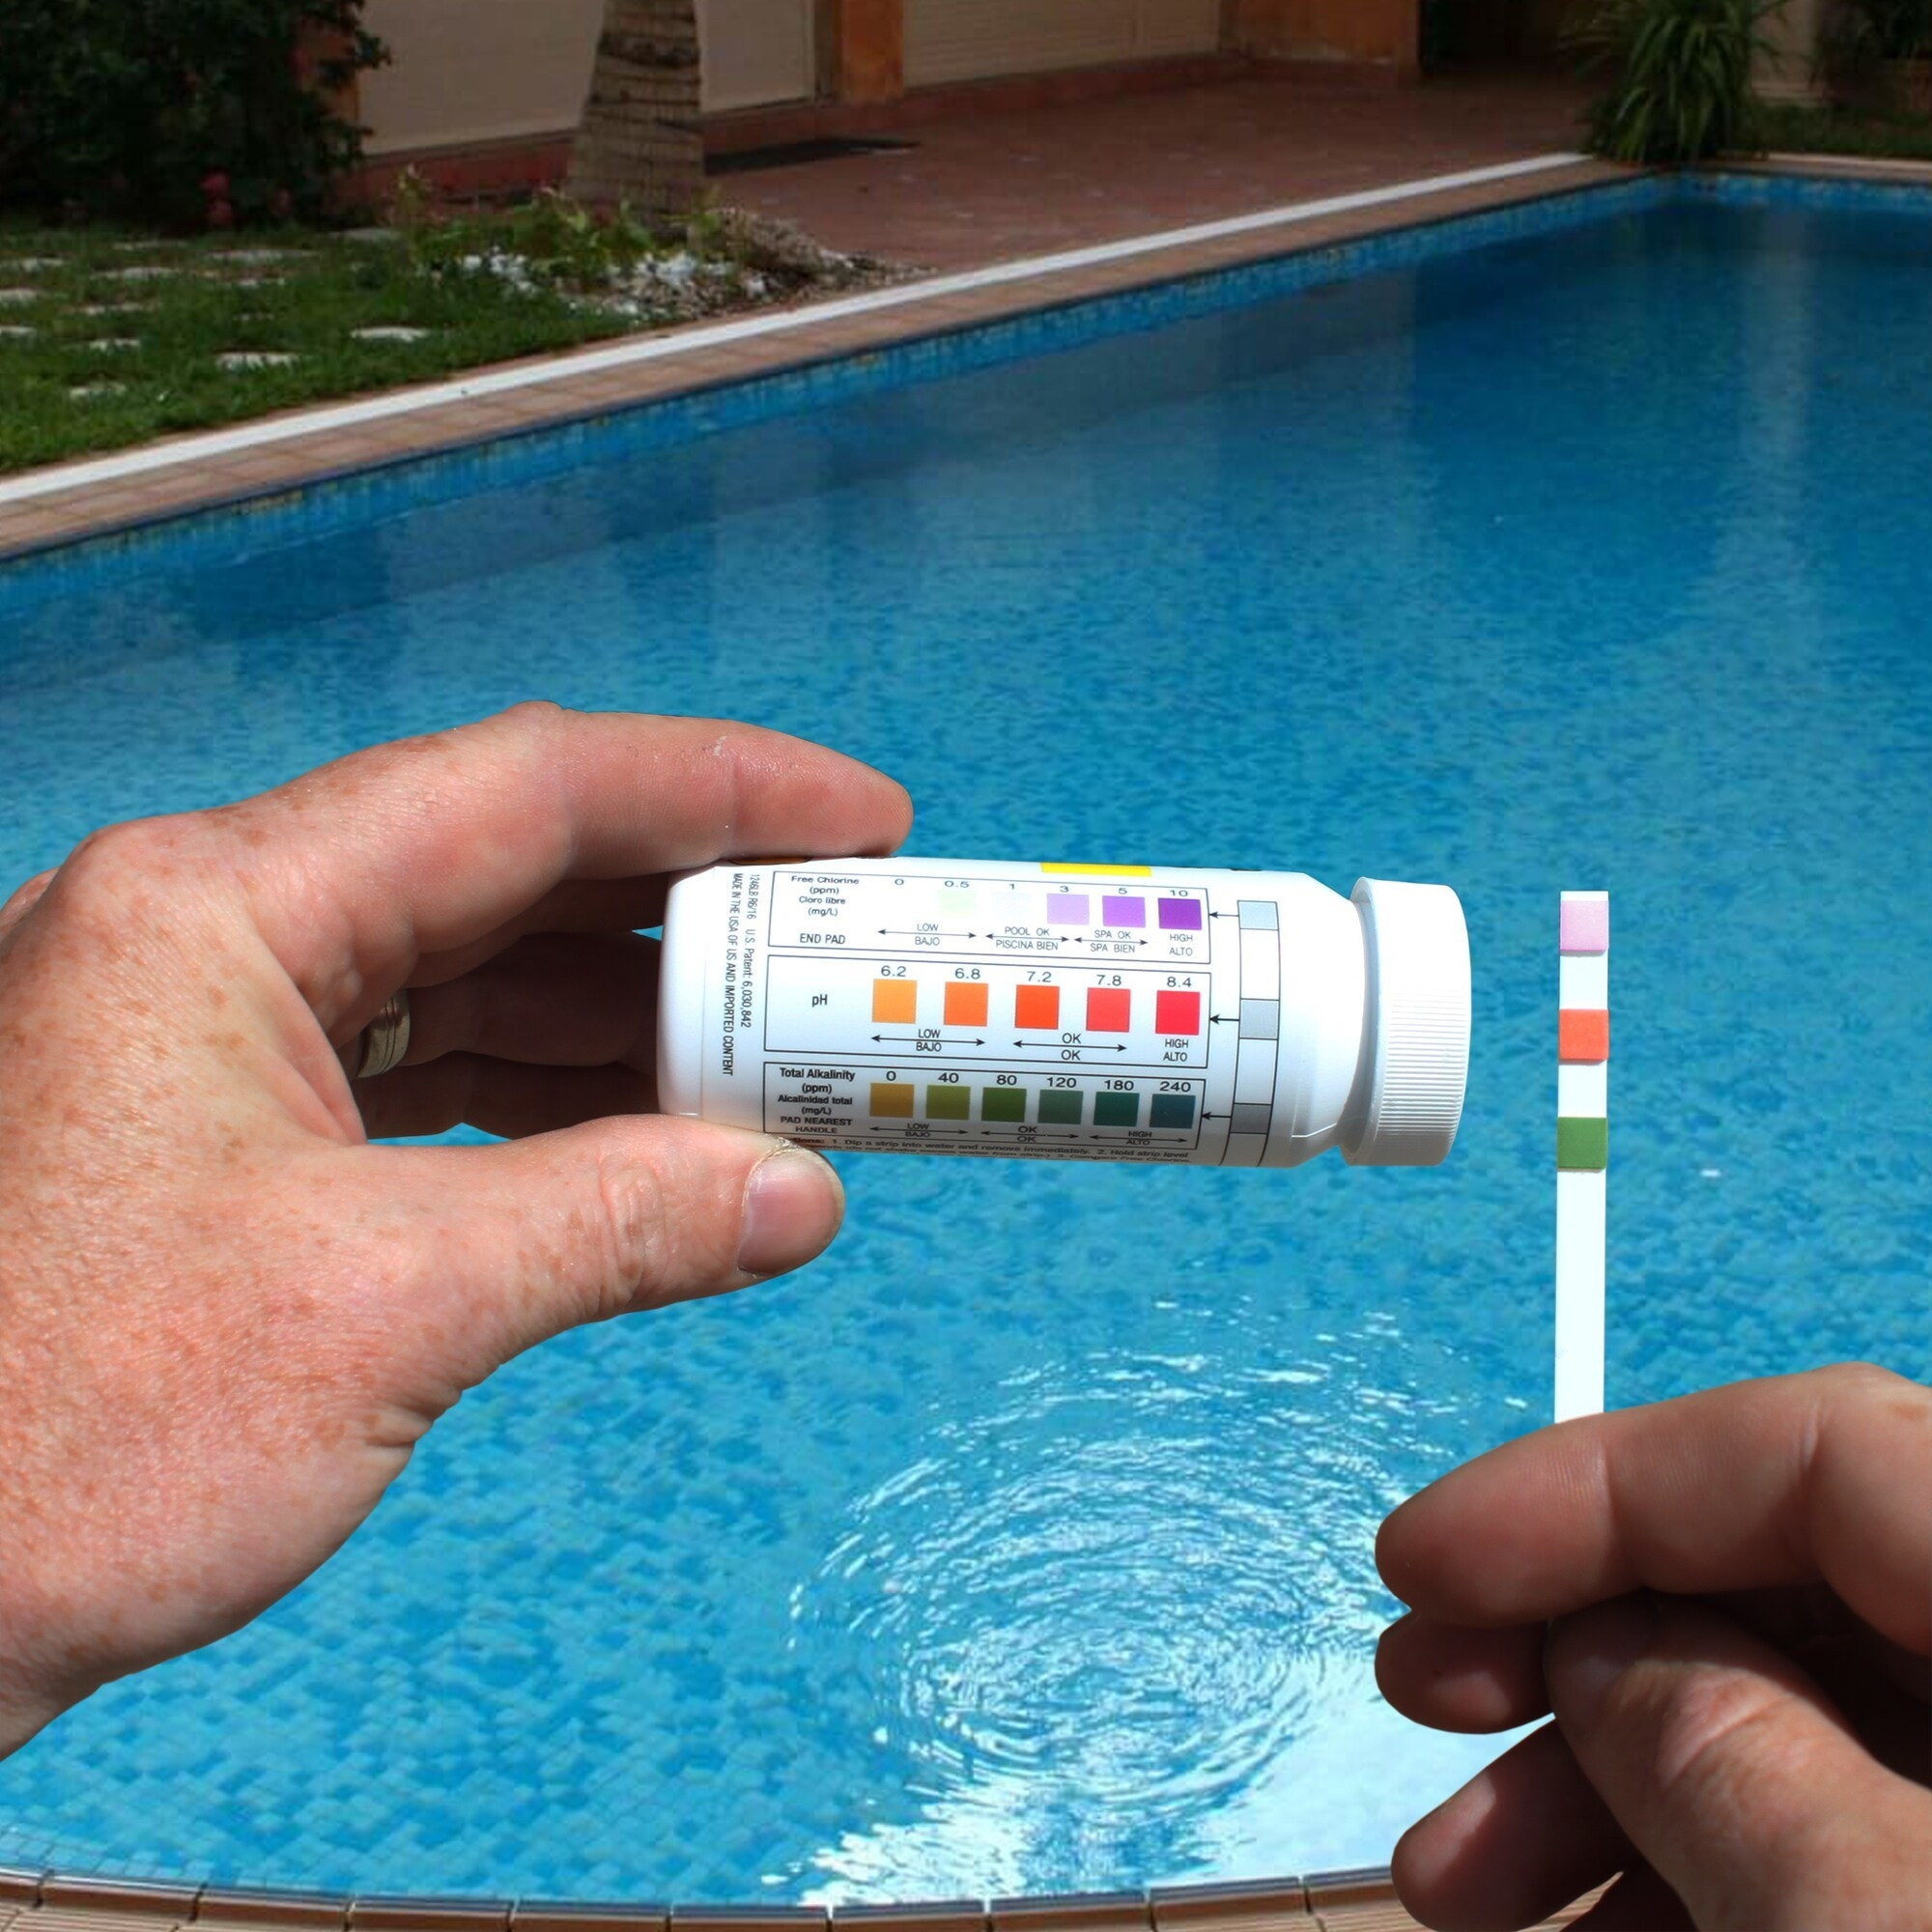 An image of pool and spa test strips